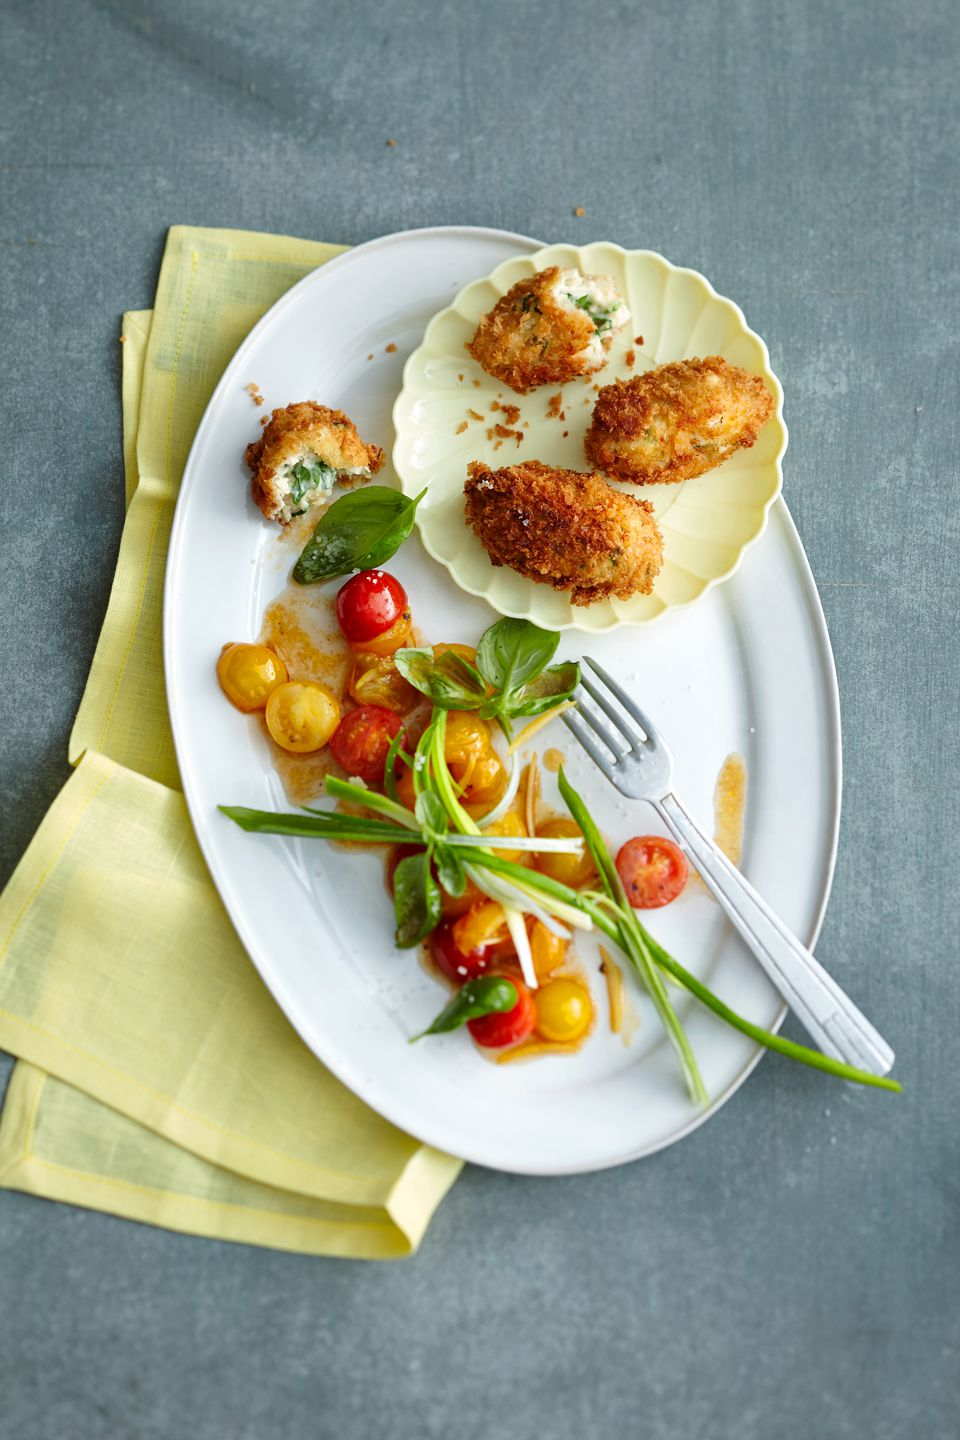 Chicken croquettes with tomato salad